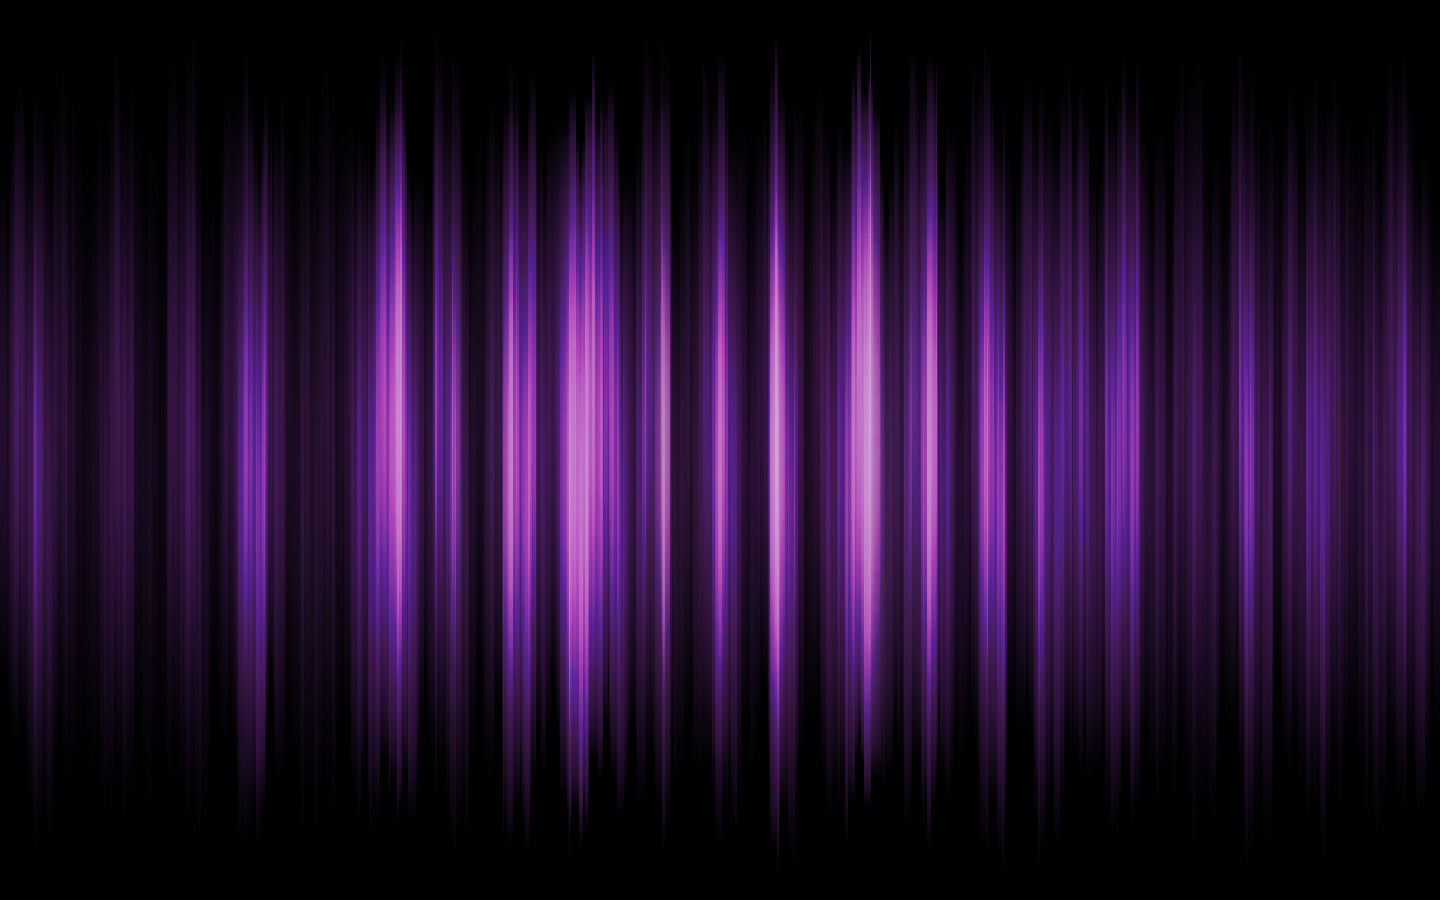 3d Animated Wallpaper Windows 7 Free Download Violet Wallpapers Hd Wallpapers Pulse